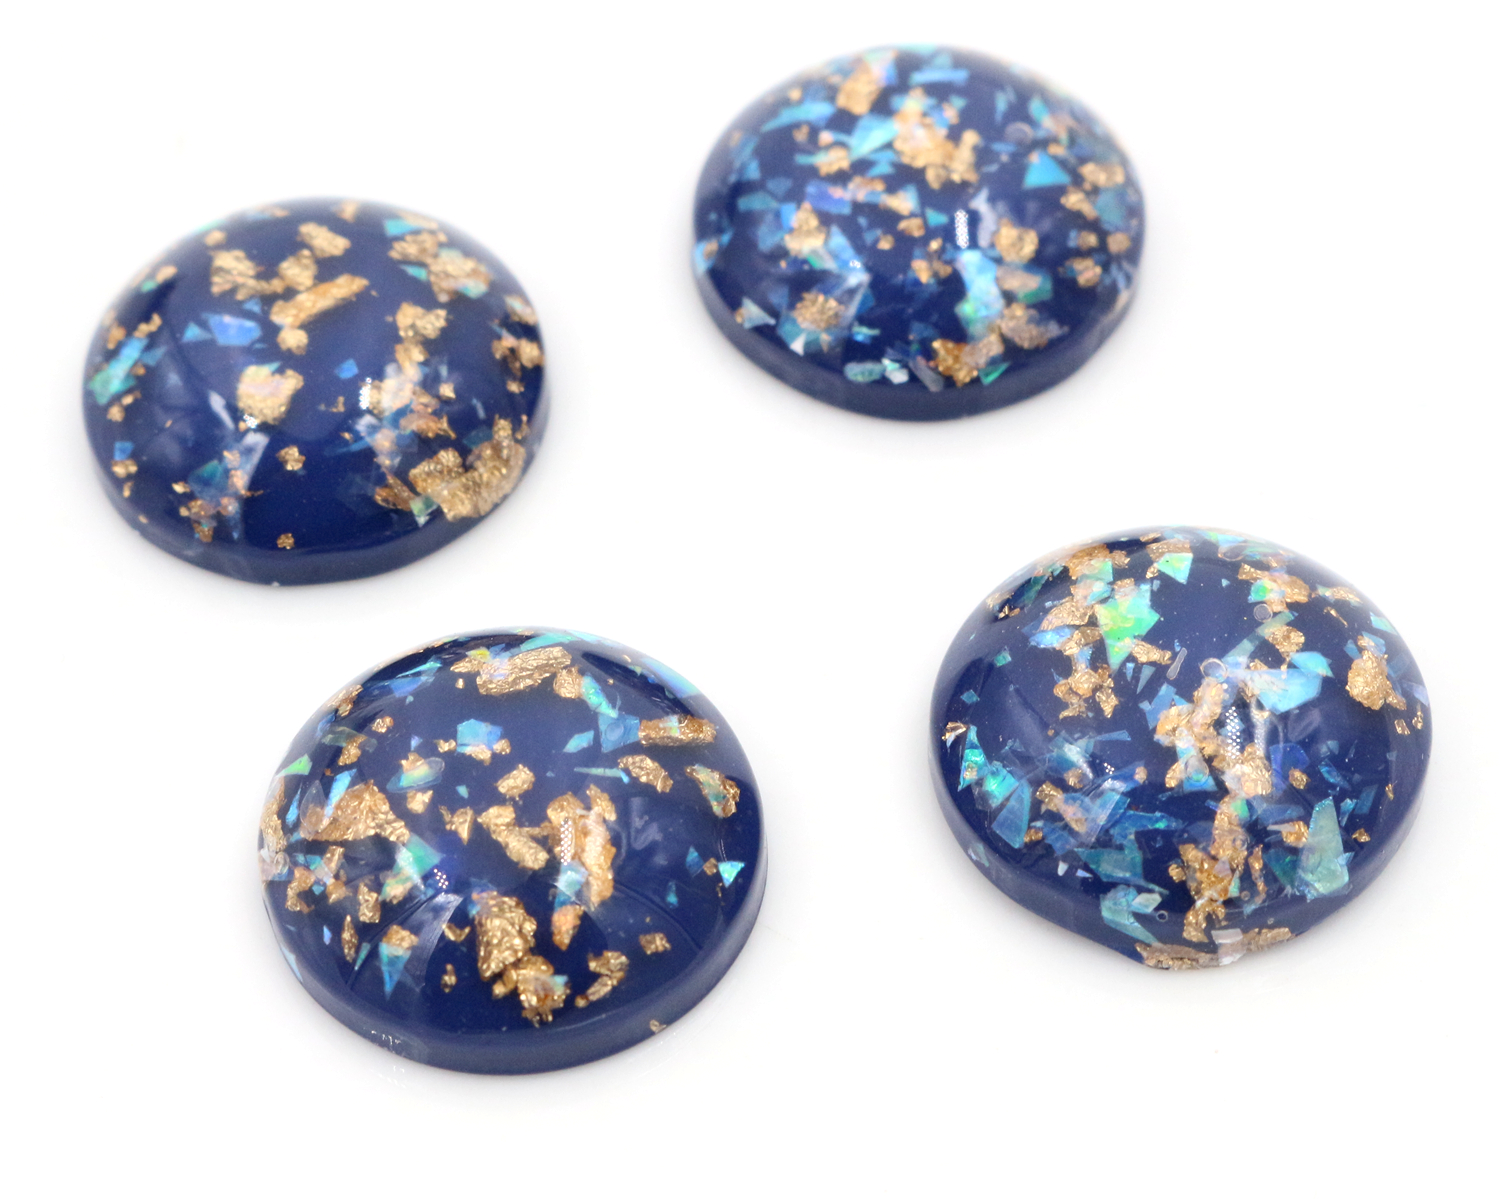 20mm 10pcs/Lot New Fashion Blue Color Built-in metal foil Flat back Resin Cabochons Cameo-V6-1020mm 10pcs/Lot New Fashion Blue Color Built-in metal foil Flat back Resin Cabochons Cameo-V6-10